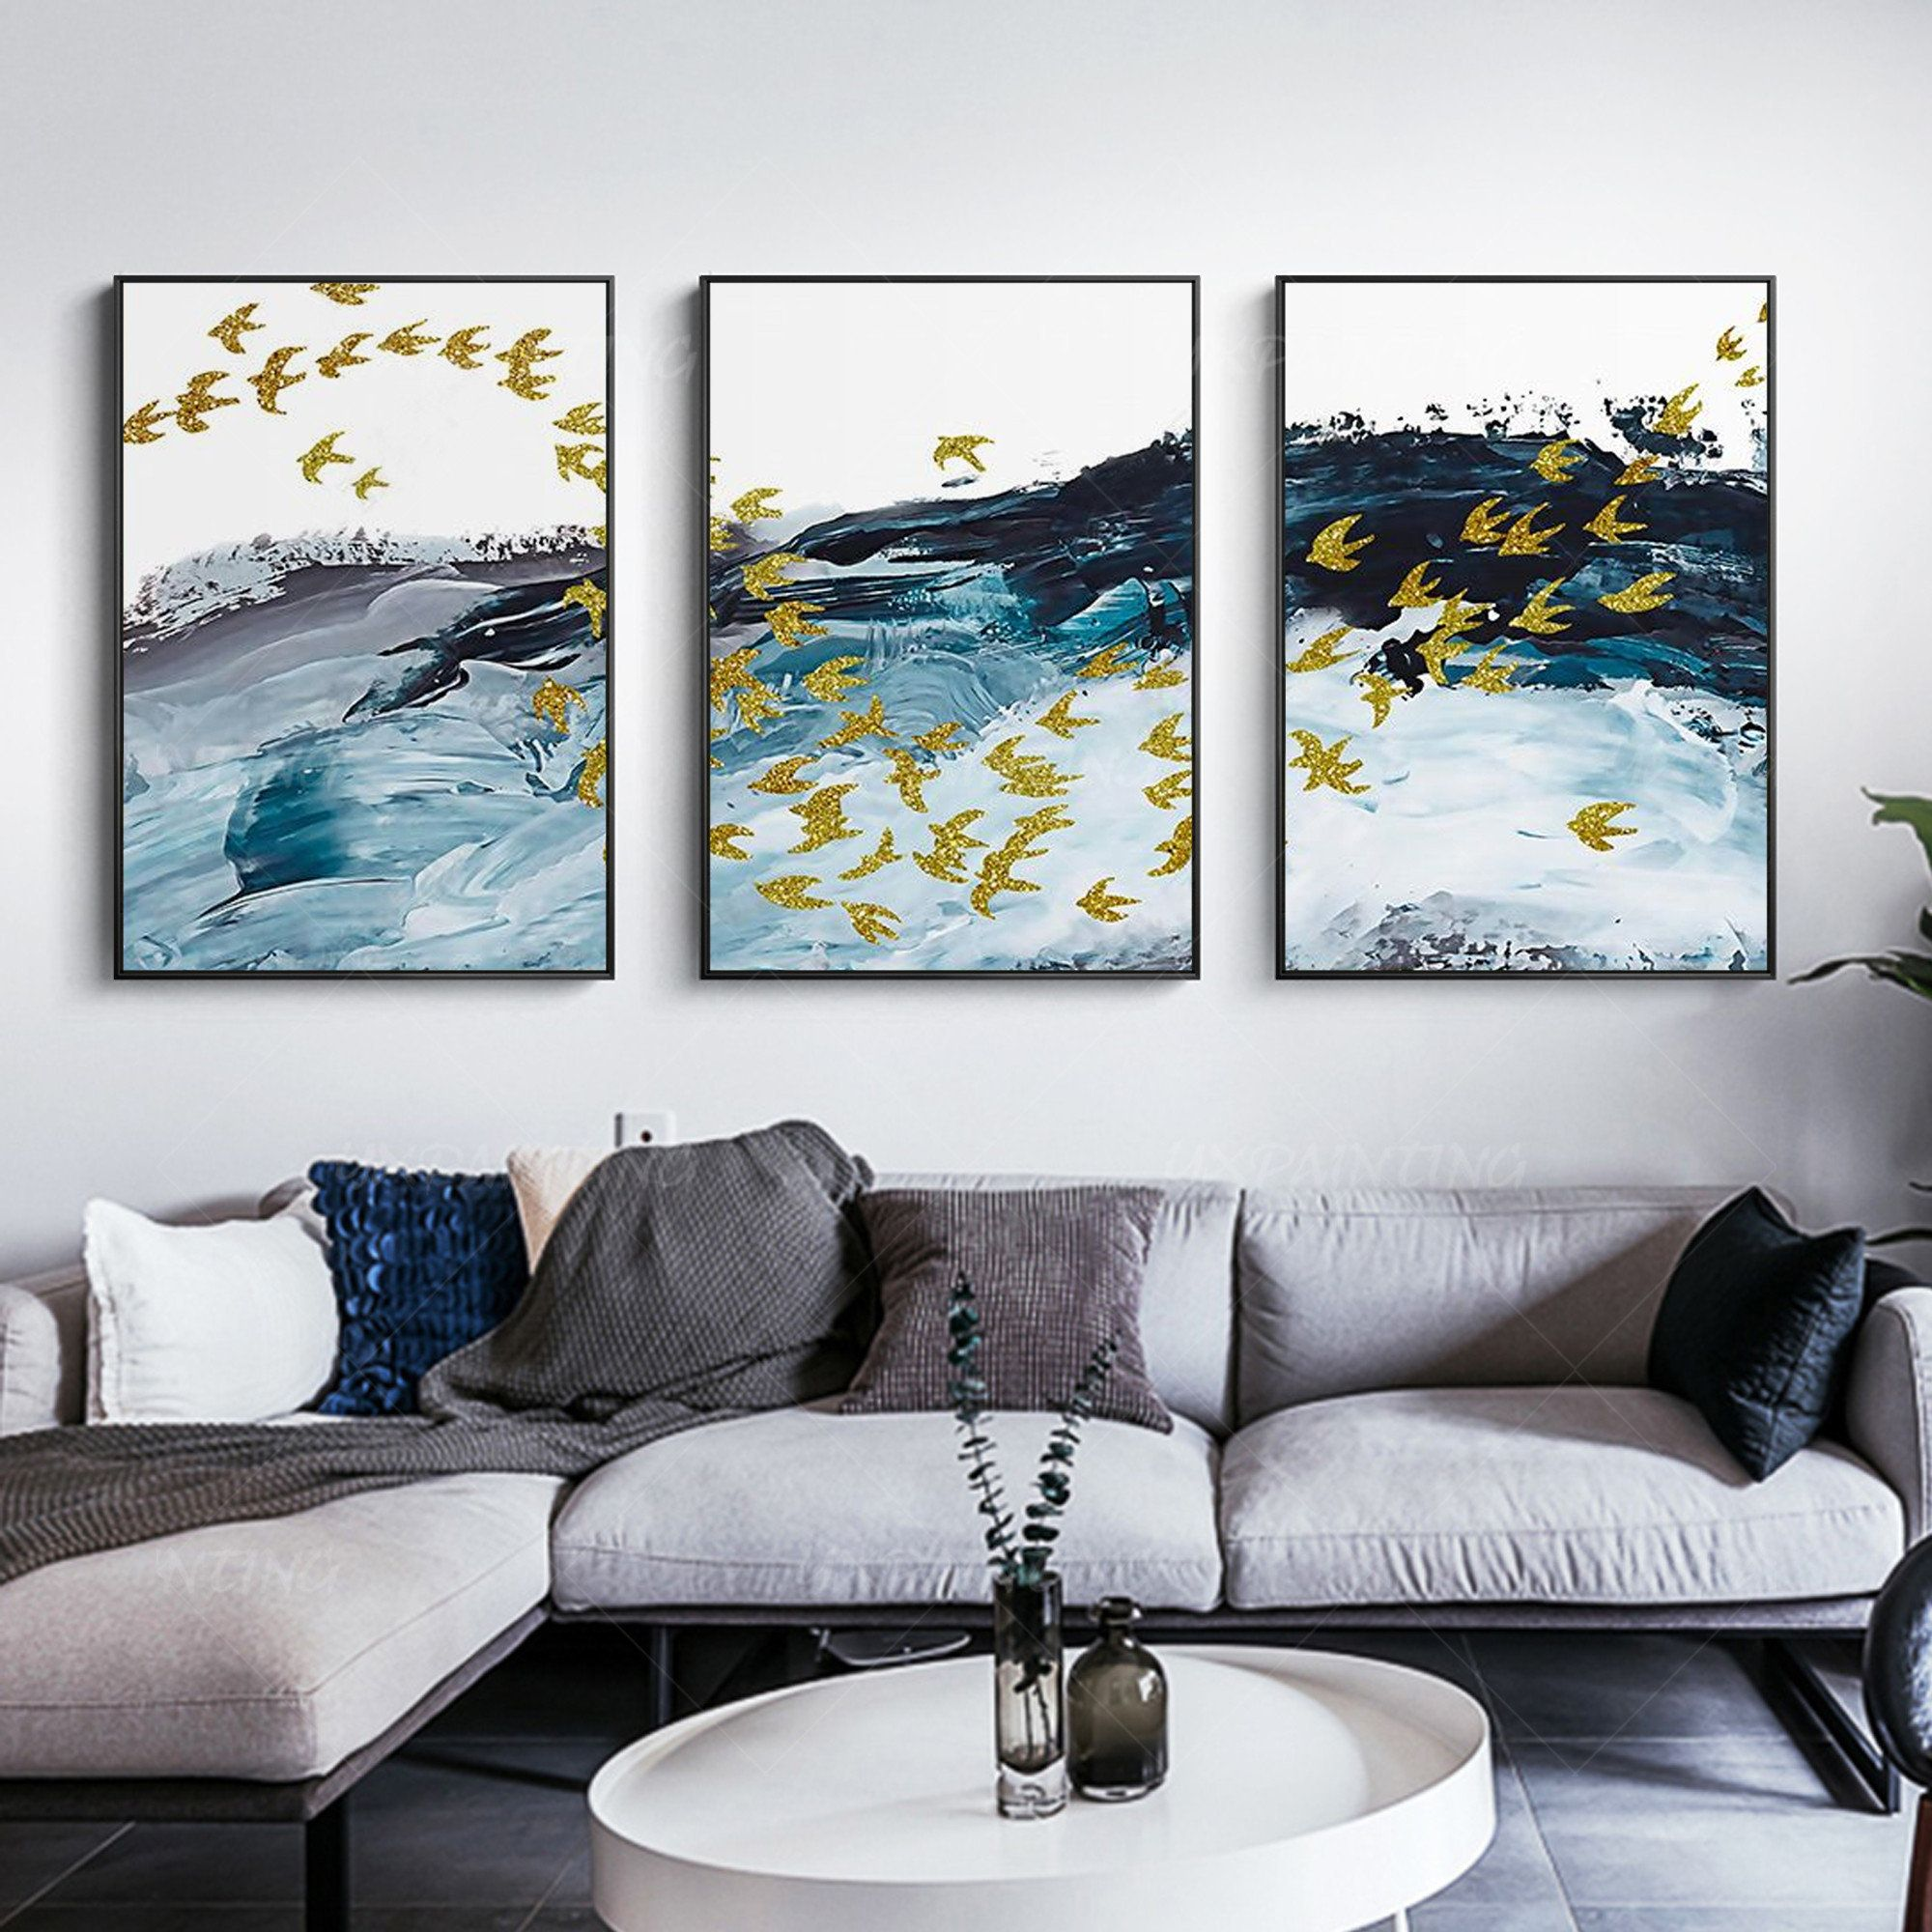 Abstract Painting Set Of 3 Wall Art Framed Wall Art Painting On Canvas River And Gold Birds Teal Blue Acrylic 3 Pieces Gold Lines Abstract In 2021 Frames On Wall Abstract Painting Canvas Painting